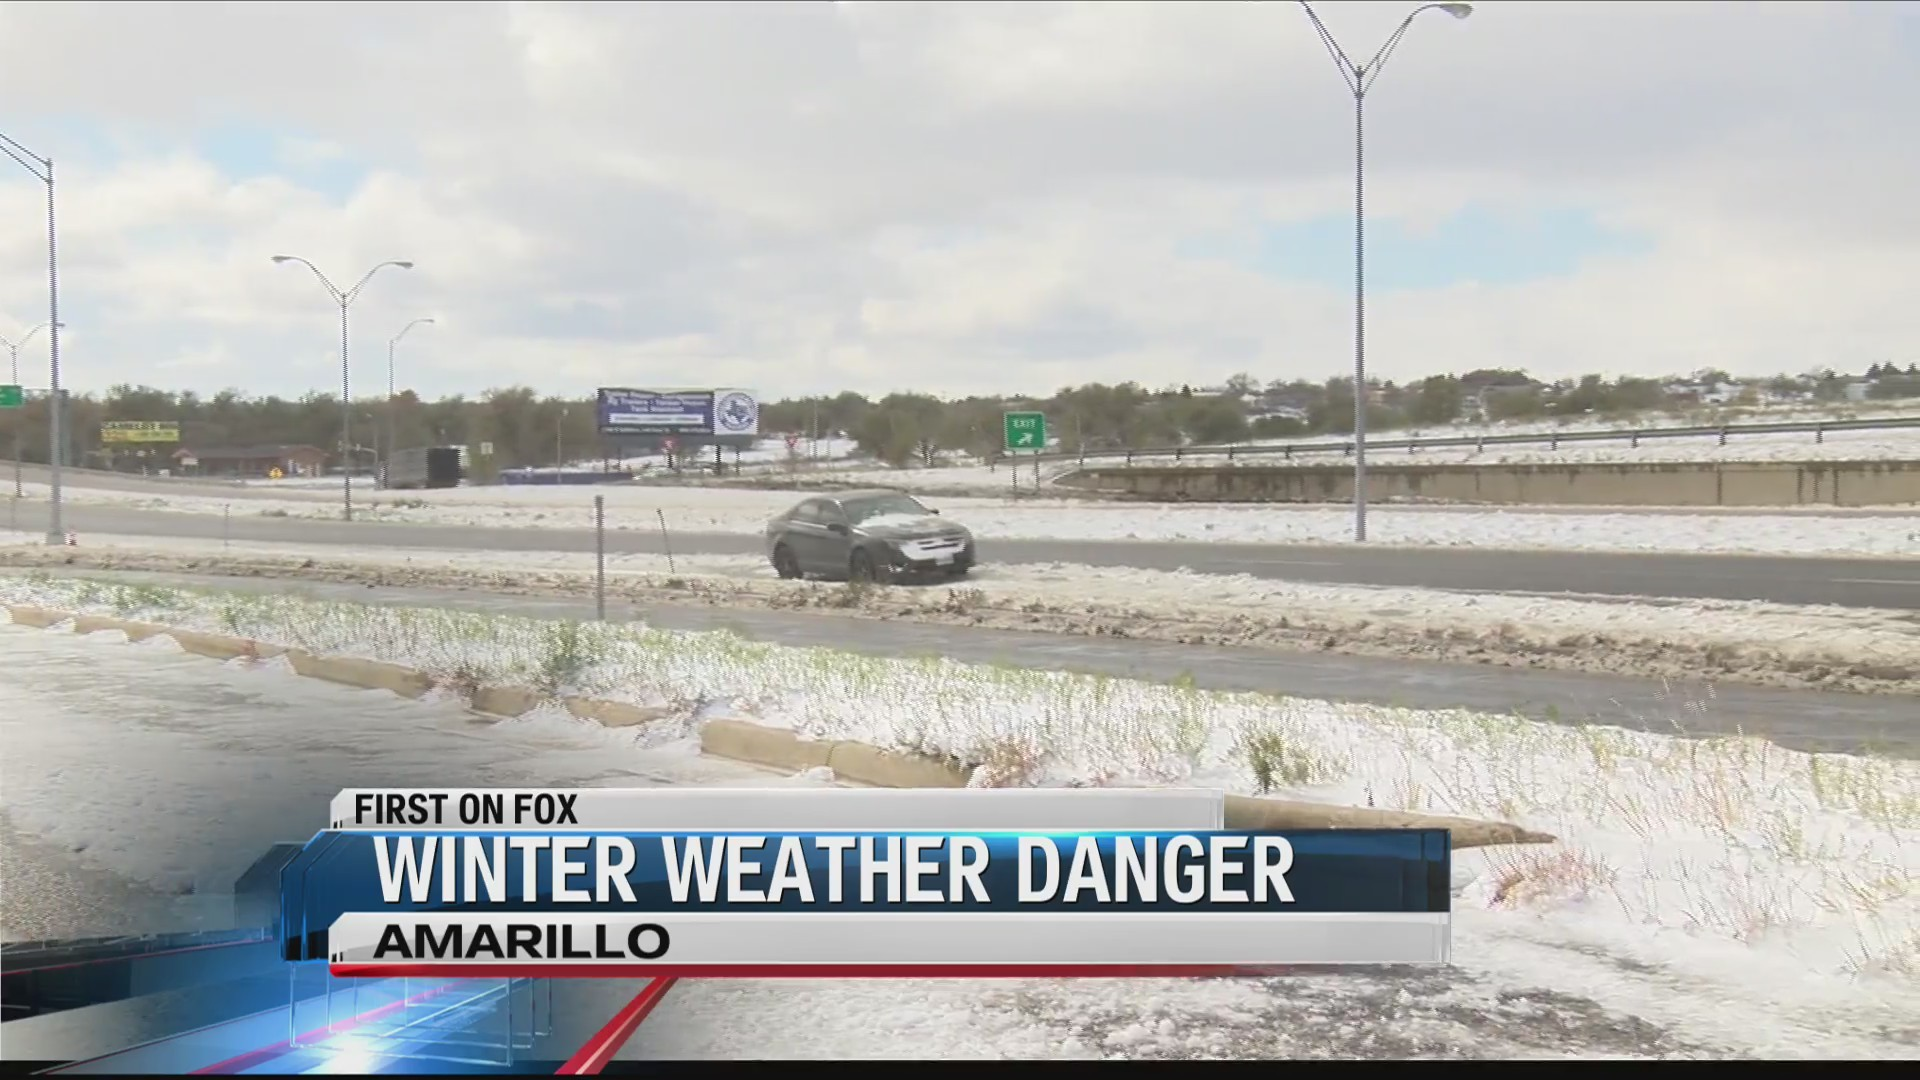 Winter Weather Conditions Cause Safety Concerns